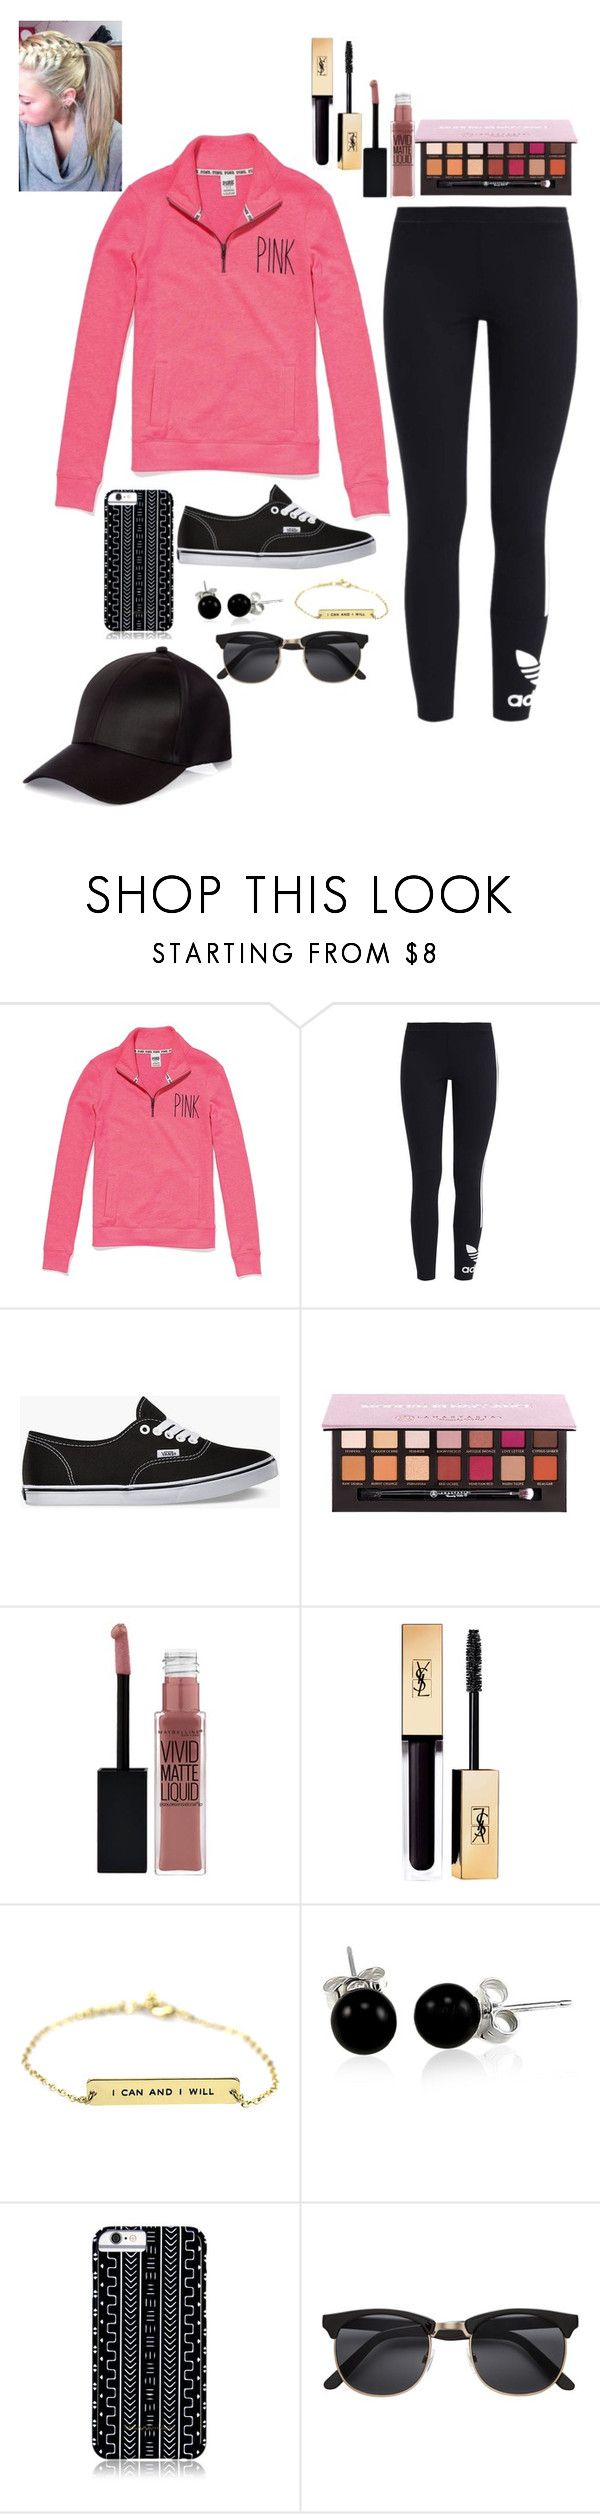 """""""<3"""" by emilyxcourtney ❤ liked on Polyvore featuring Victoria's Secret, adidas Originals, Vans, Anastasia Beverly Hills, Maybelline, Bling Jewelry, Savannah Hayes, H&M and River Island"""